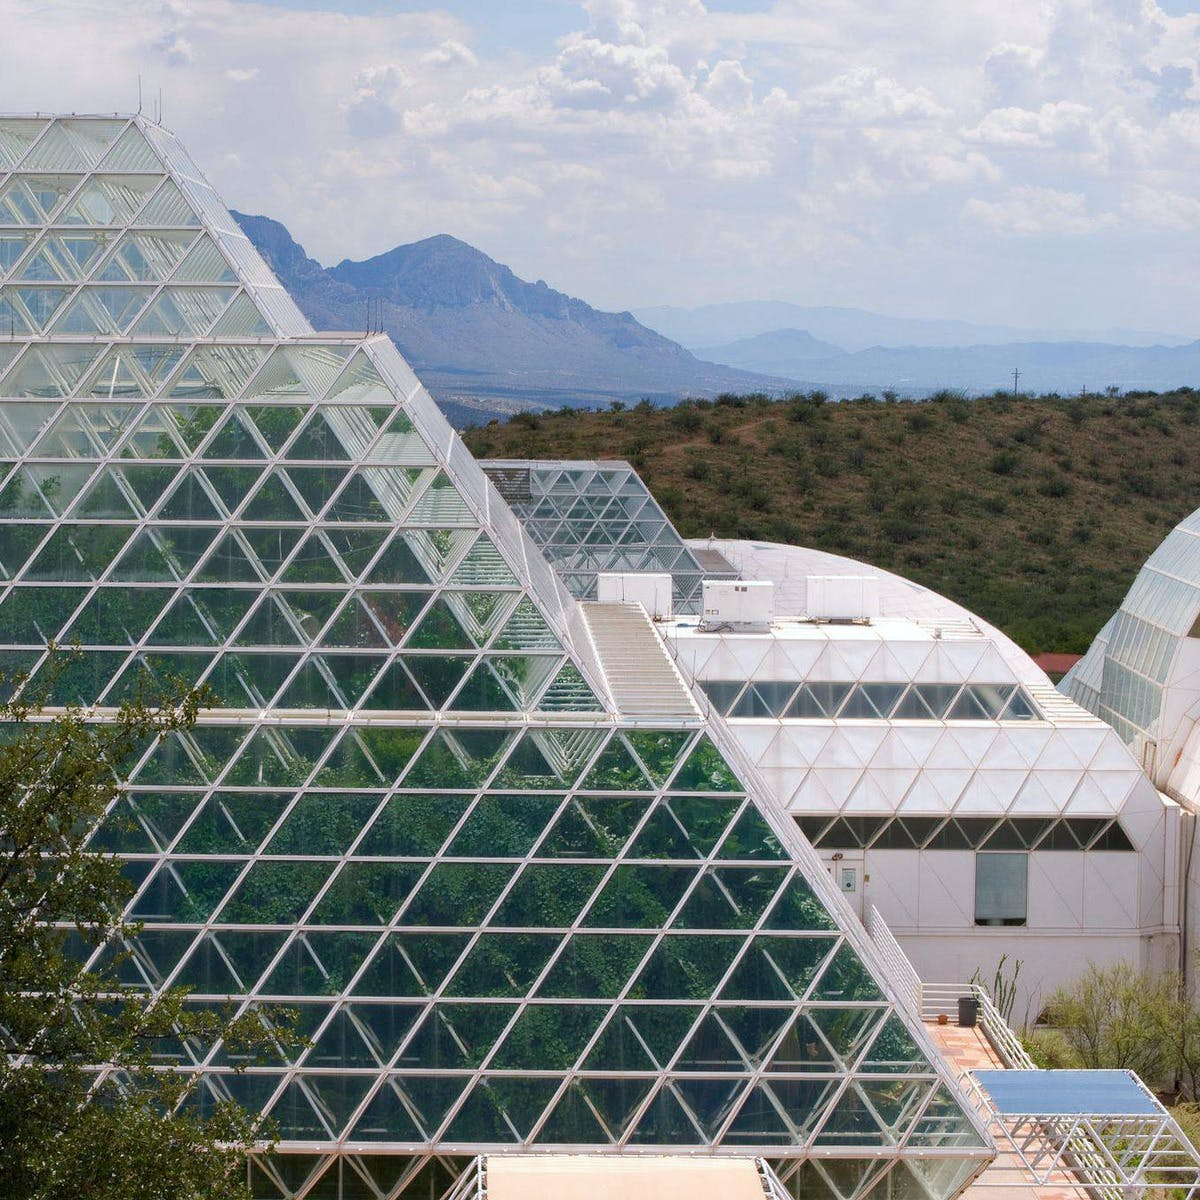 Biosphere 2 Science for the Future of Our Planet